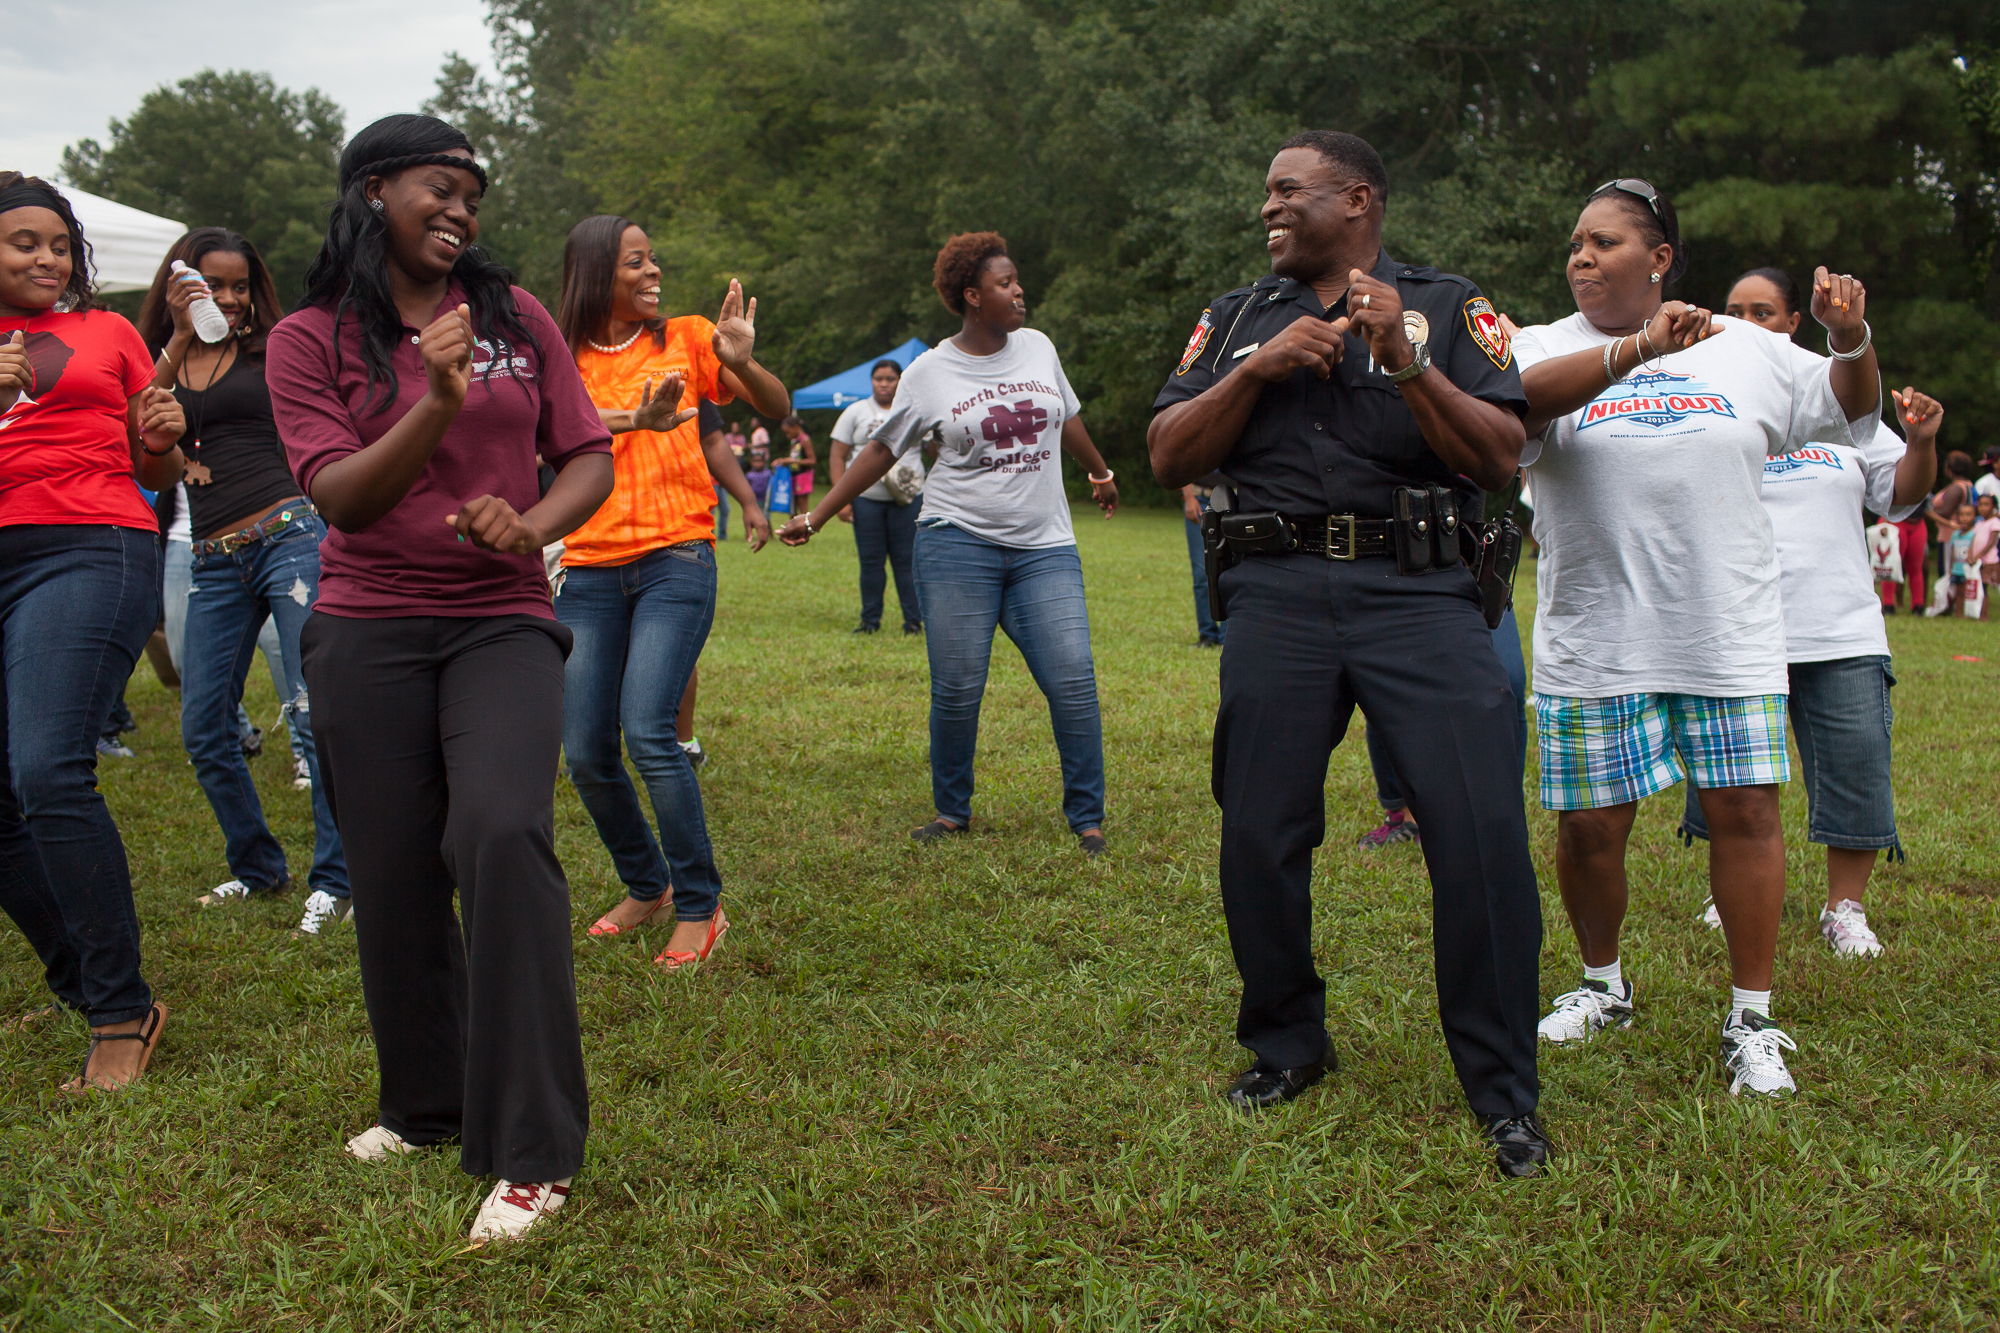 Durham Police officer R. Carson dances with members of North Carolina Central University's step dance team during National Night Out near McDougald Terrace, a low-income public housing project where shootings have been frequent. National Night Out events strengthen relationships between neighborhoods, civic groups, and police in an effort to fight crime and increase community spirit. Only about 42 percent of Durham Police officers live in Durham, according to a 2014 city report. The late Harvard University criminal justice scholar William Stuntz saw a cure to violent crime through a return to neighborhood-friendly policing over modern proactive, militaristic methods. Encouraging officers to live in or near the neighborhoods they patrol builds trust, discourages crime, and makes witnesses feel safer to talk when violence occurs. The results are more effective jury trials, fewer plea deals, more respect for the police, and more democratic justice in communities that struggle with poverty and violence.